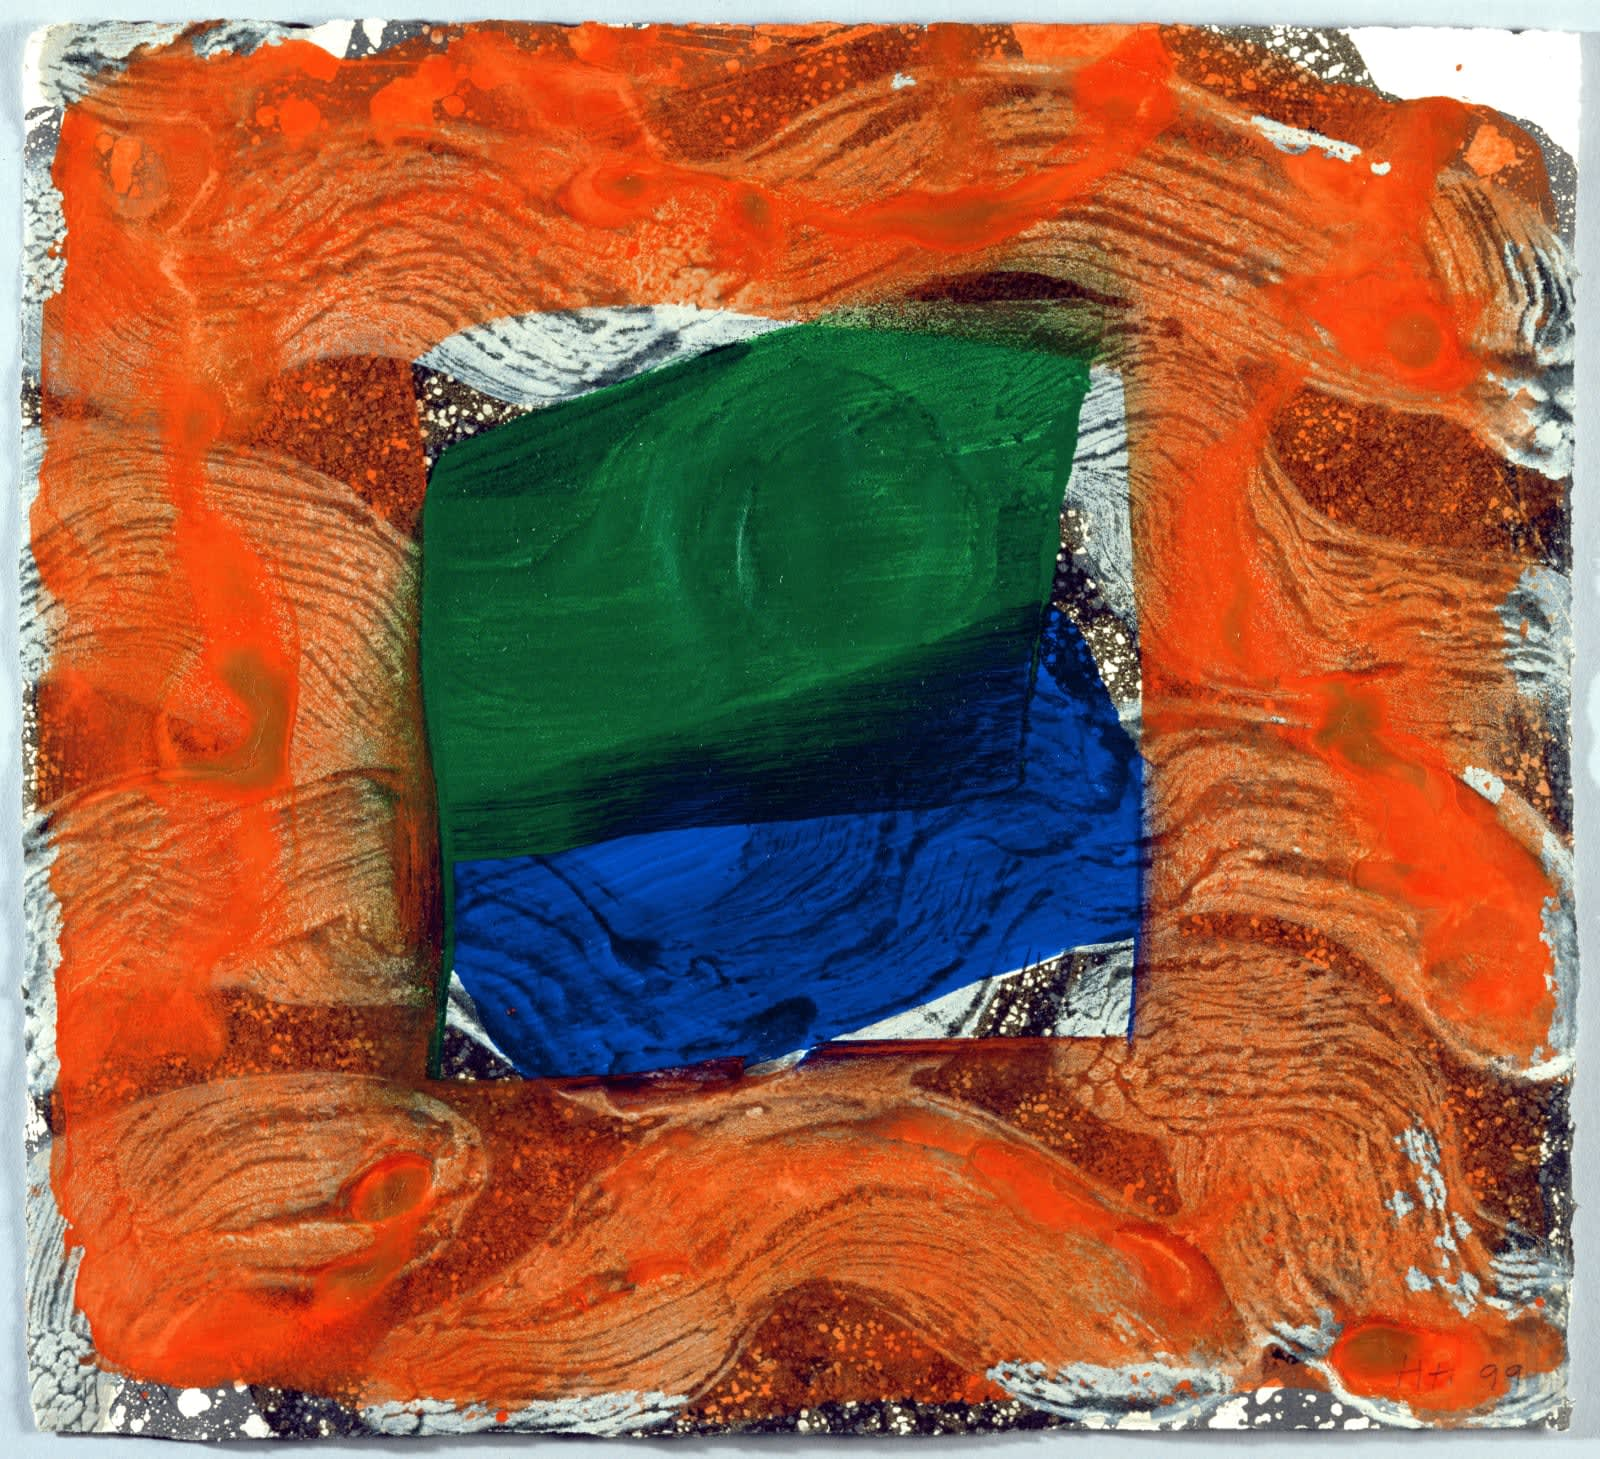 """<span class=""""link fancybox-details-link""""><a href=""""/artists/76-howard-hodgkin/works/1021-howard-hodgkin-books-for-the-paris-review-1997/"""">View Detail Page</a></span><div class=""""artist""""><strong>Howard Hodgkin</strong></div> 1932 - 2017 <div class=""""title""""><em>Books for the Paris Review</em>, 1997</div> <div class=""""signed_and_dated"""">signed with initials and dated<br /> AP X/X artists proof aside from the edition of 100</div> <div class=""""medium"""">etching with aquatint & carborundum<br /> </div> <div class=""""dimensions"""">38 x 42cm</div> <div class=""""edition_details"""">AP X/X artists proof aside from the edition of 100</div>"""